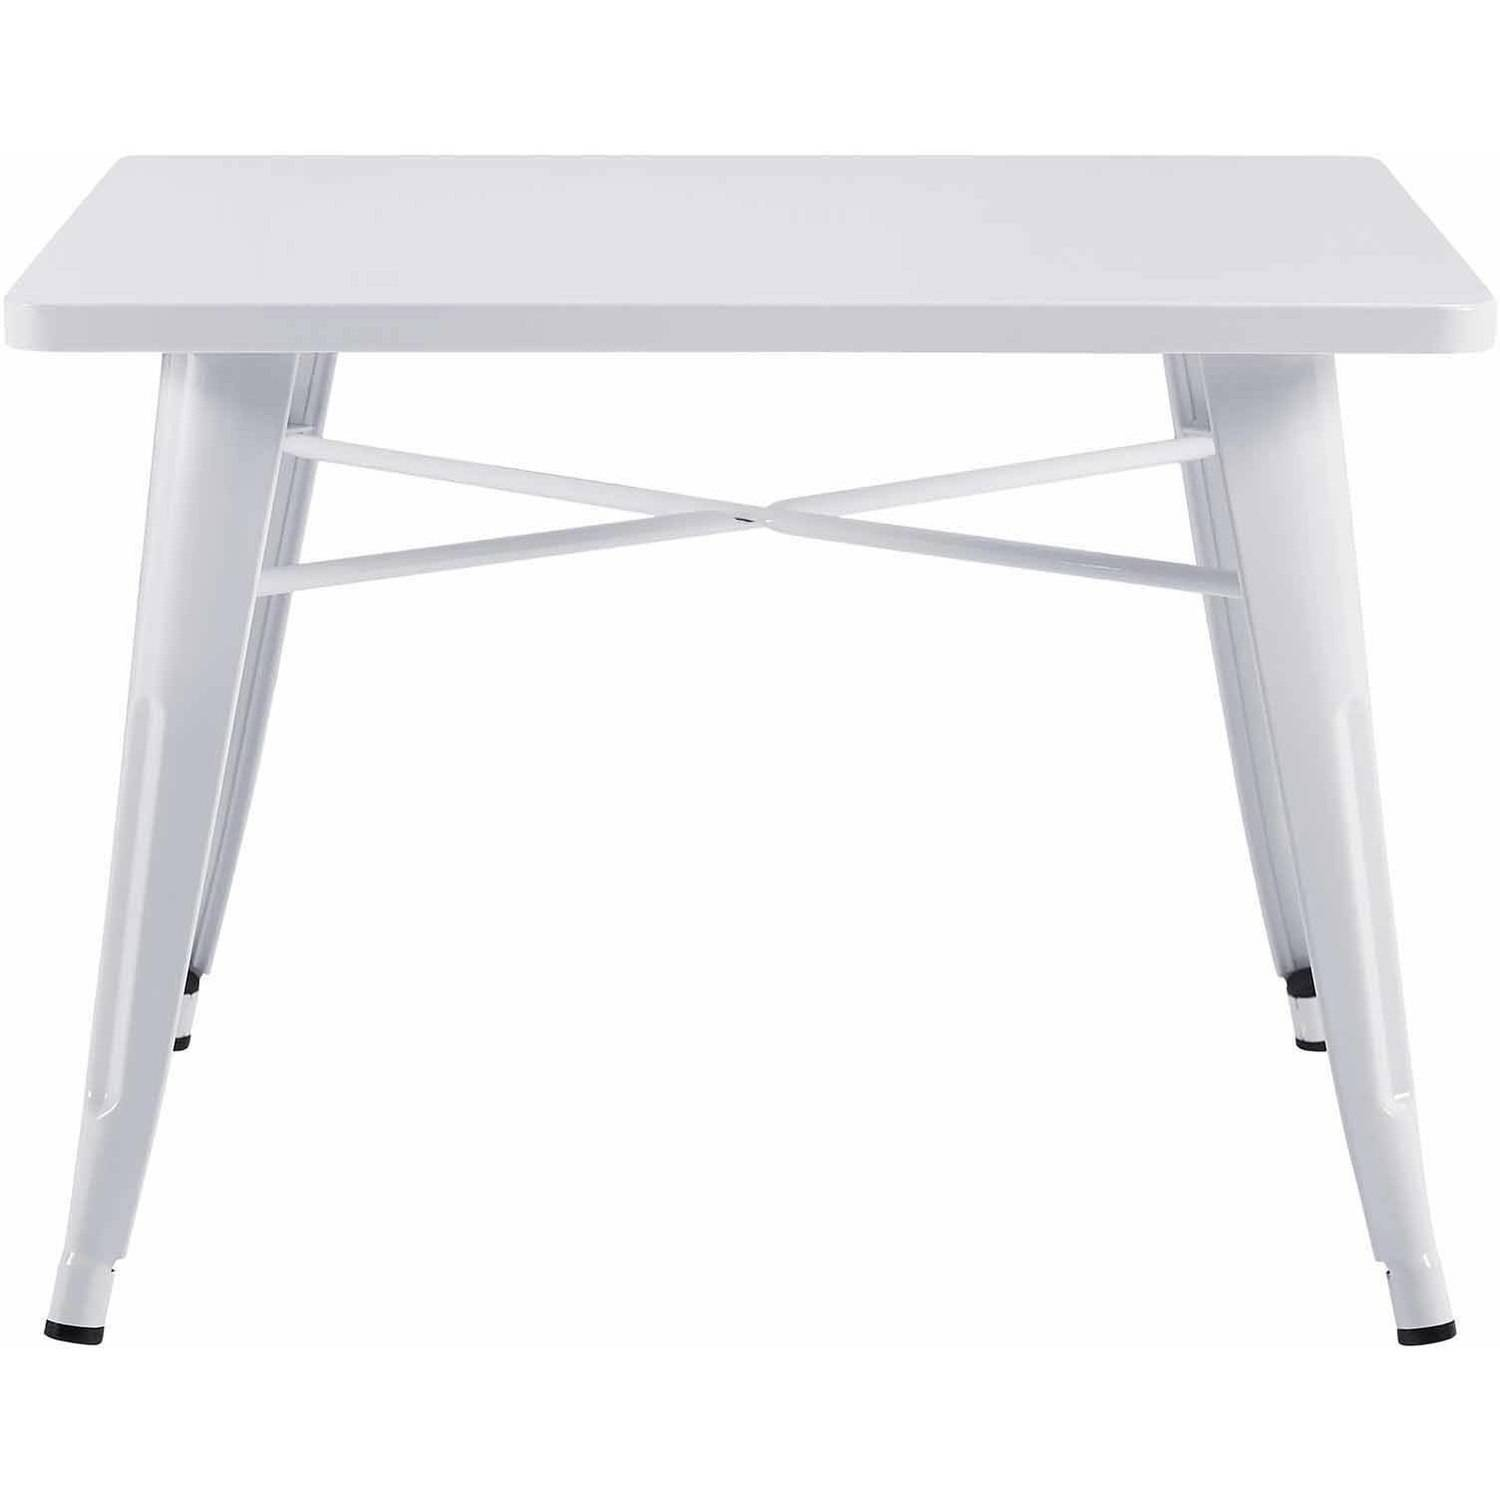 Better Homes and Gardens Kids Metal Table Multiple Colors